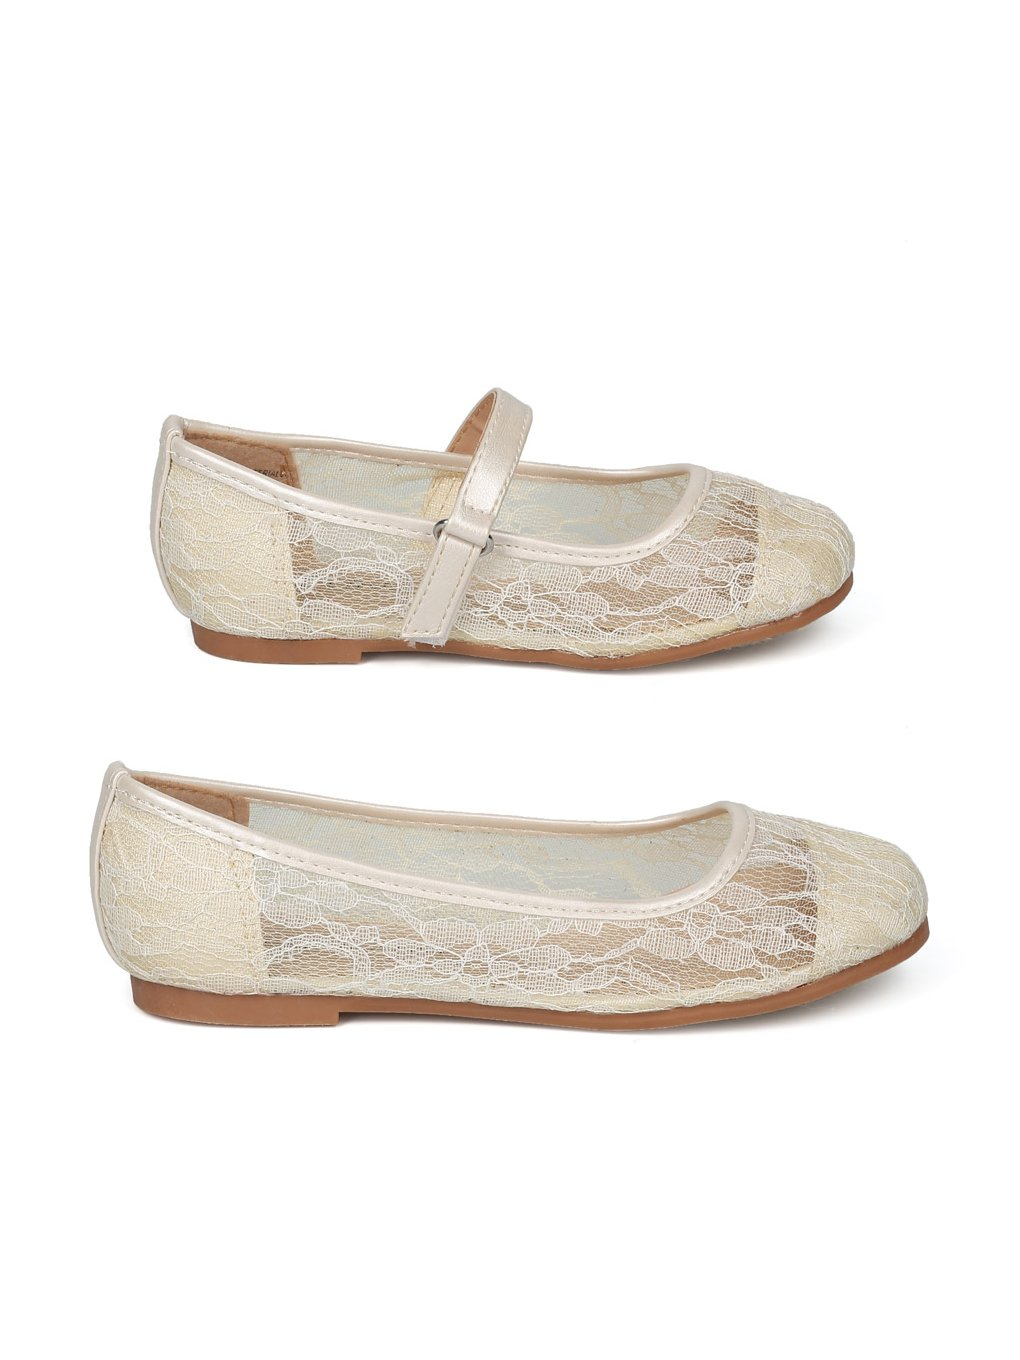 Alrisco Lace Mesh Capped Toe Ballet Flat HF24 - Ivy Mix Media (Size: Big Kid 4) by Alrisco (Image #2)